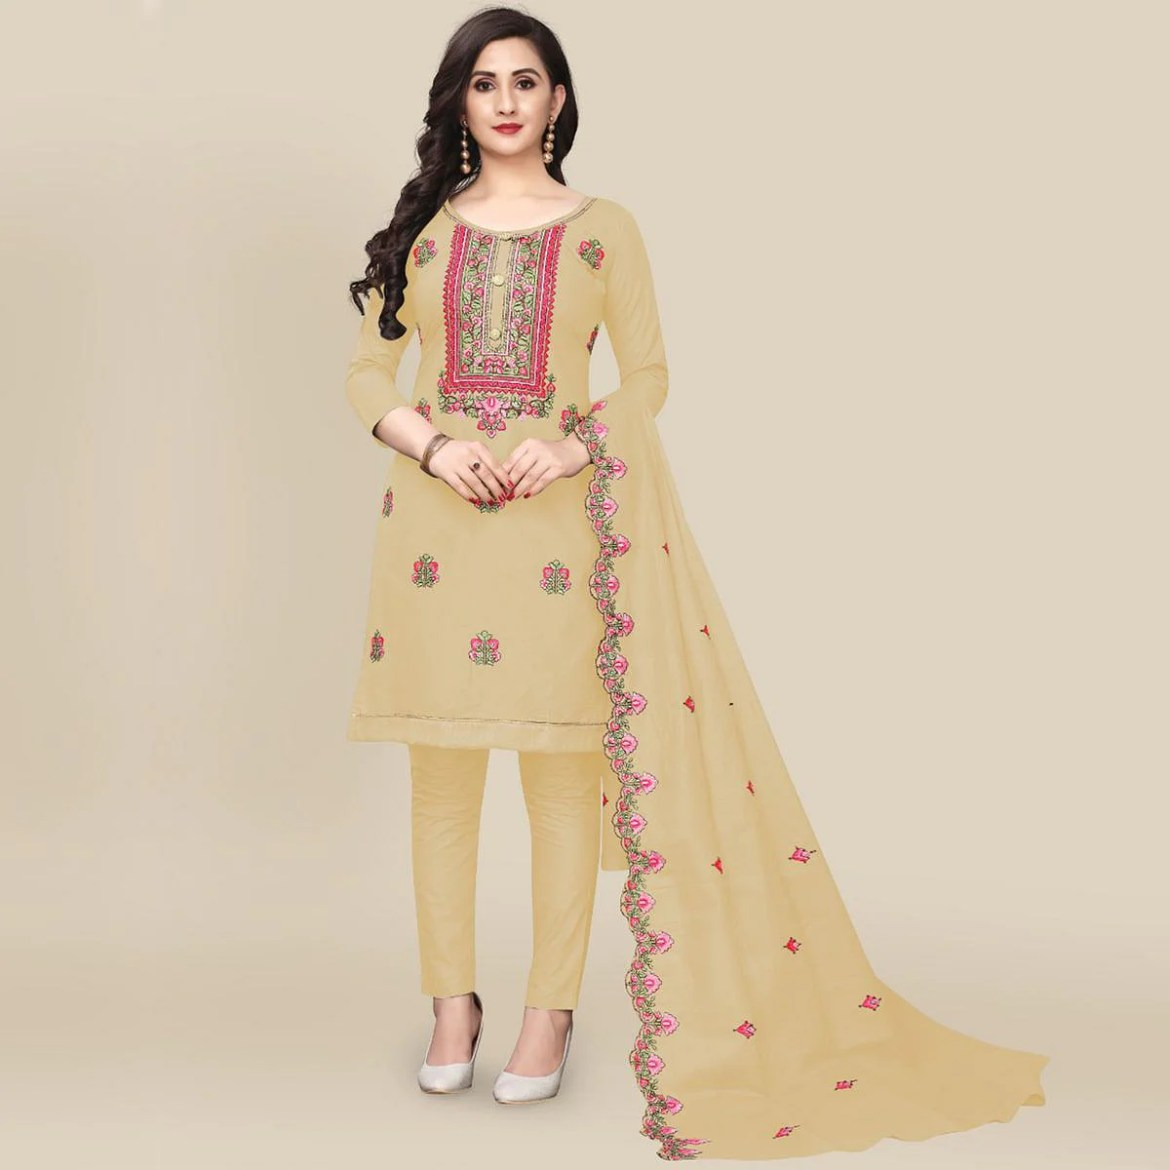 IRIS - Cream Colored Partywear Embroidered Work Cotton Dress Material